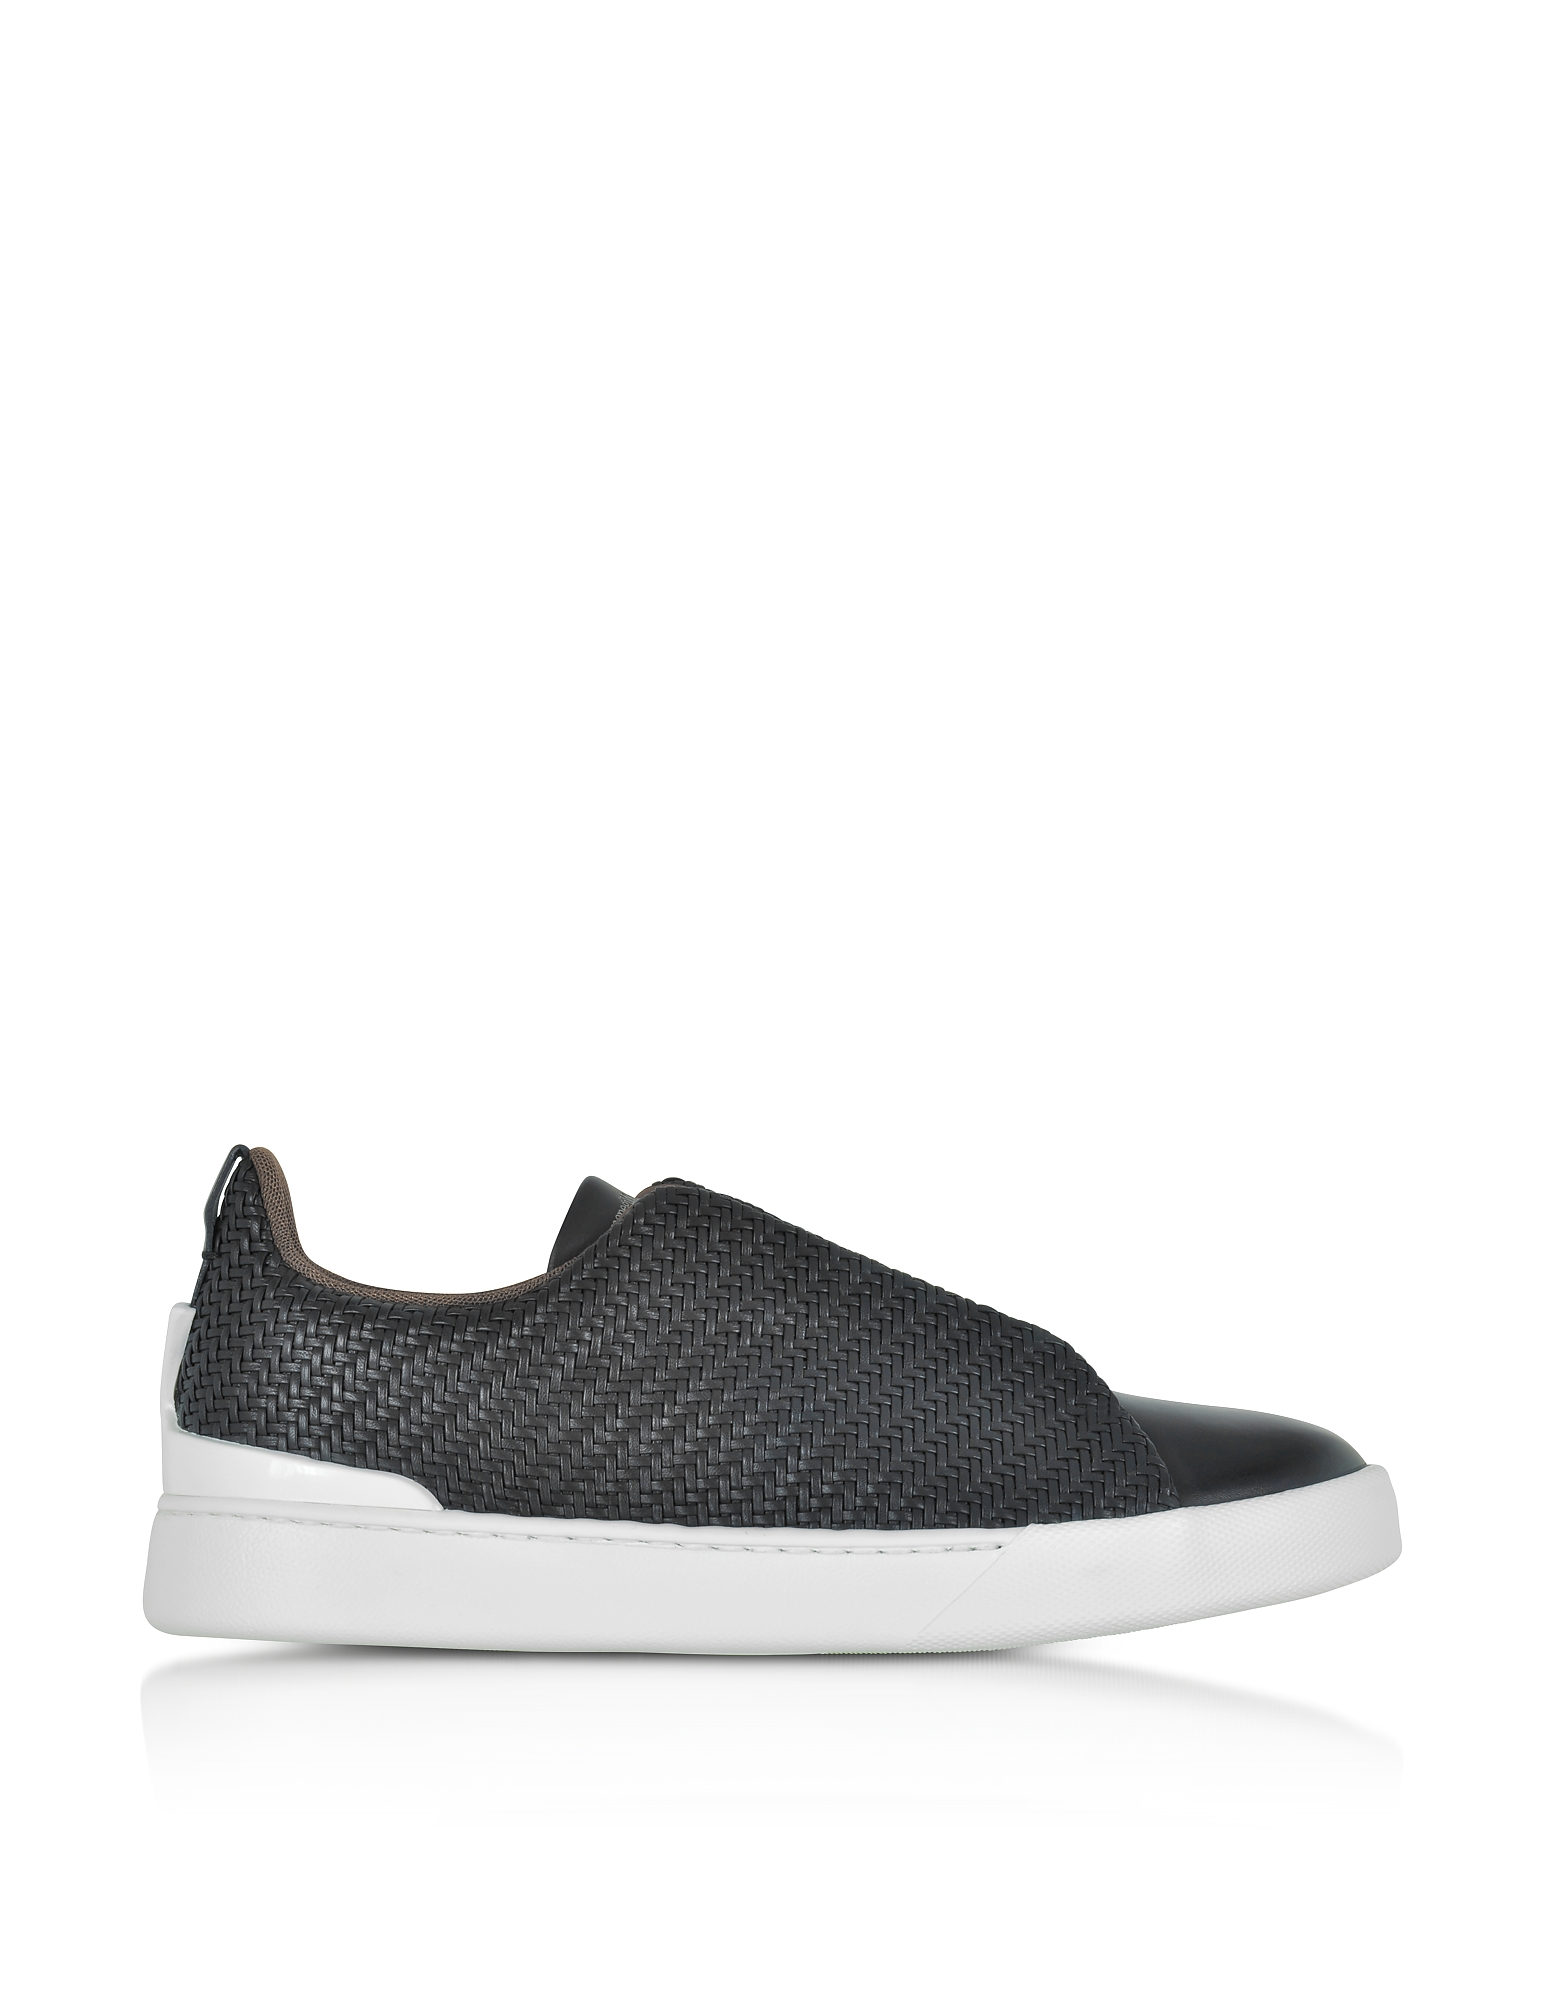 Ermenegildo Zegna Shoes, Black Triple Stitch Woven Leather Low Top Sneakers